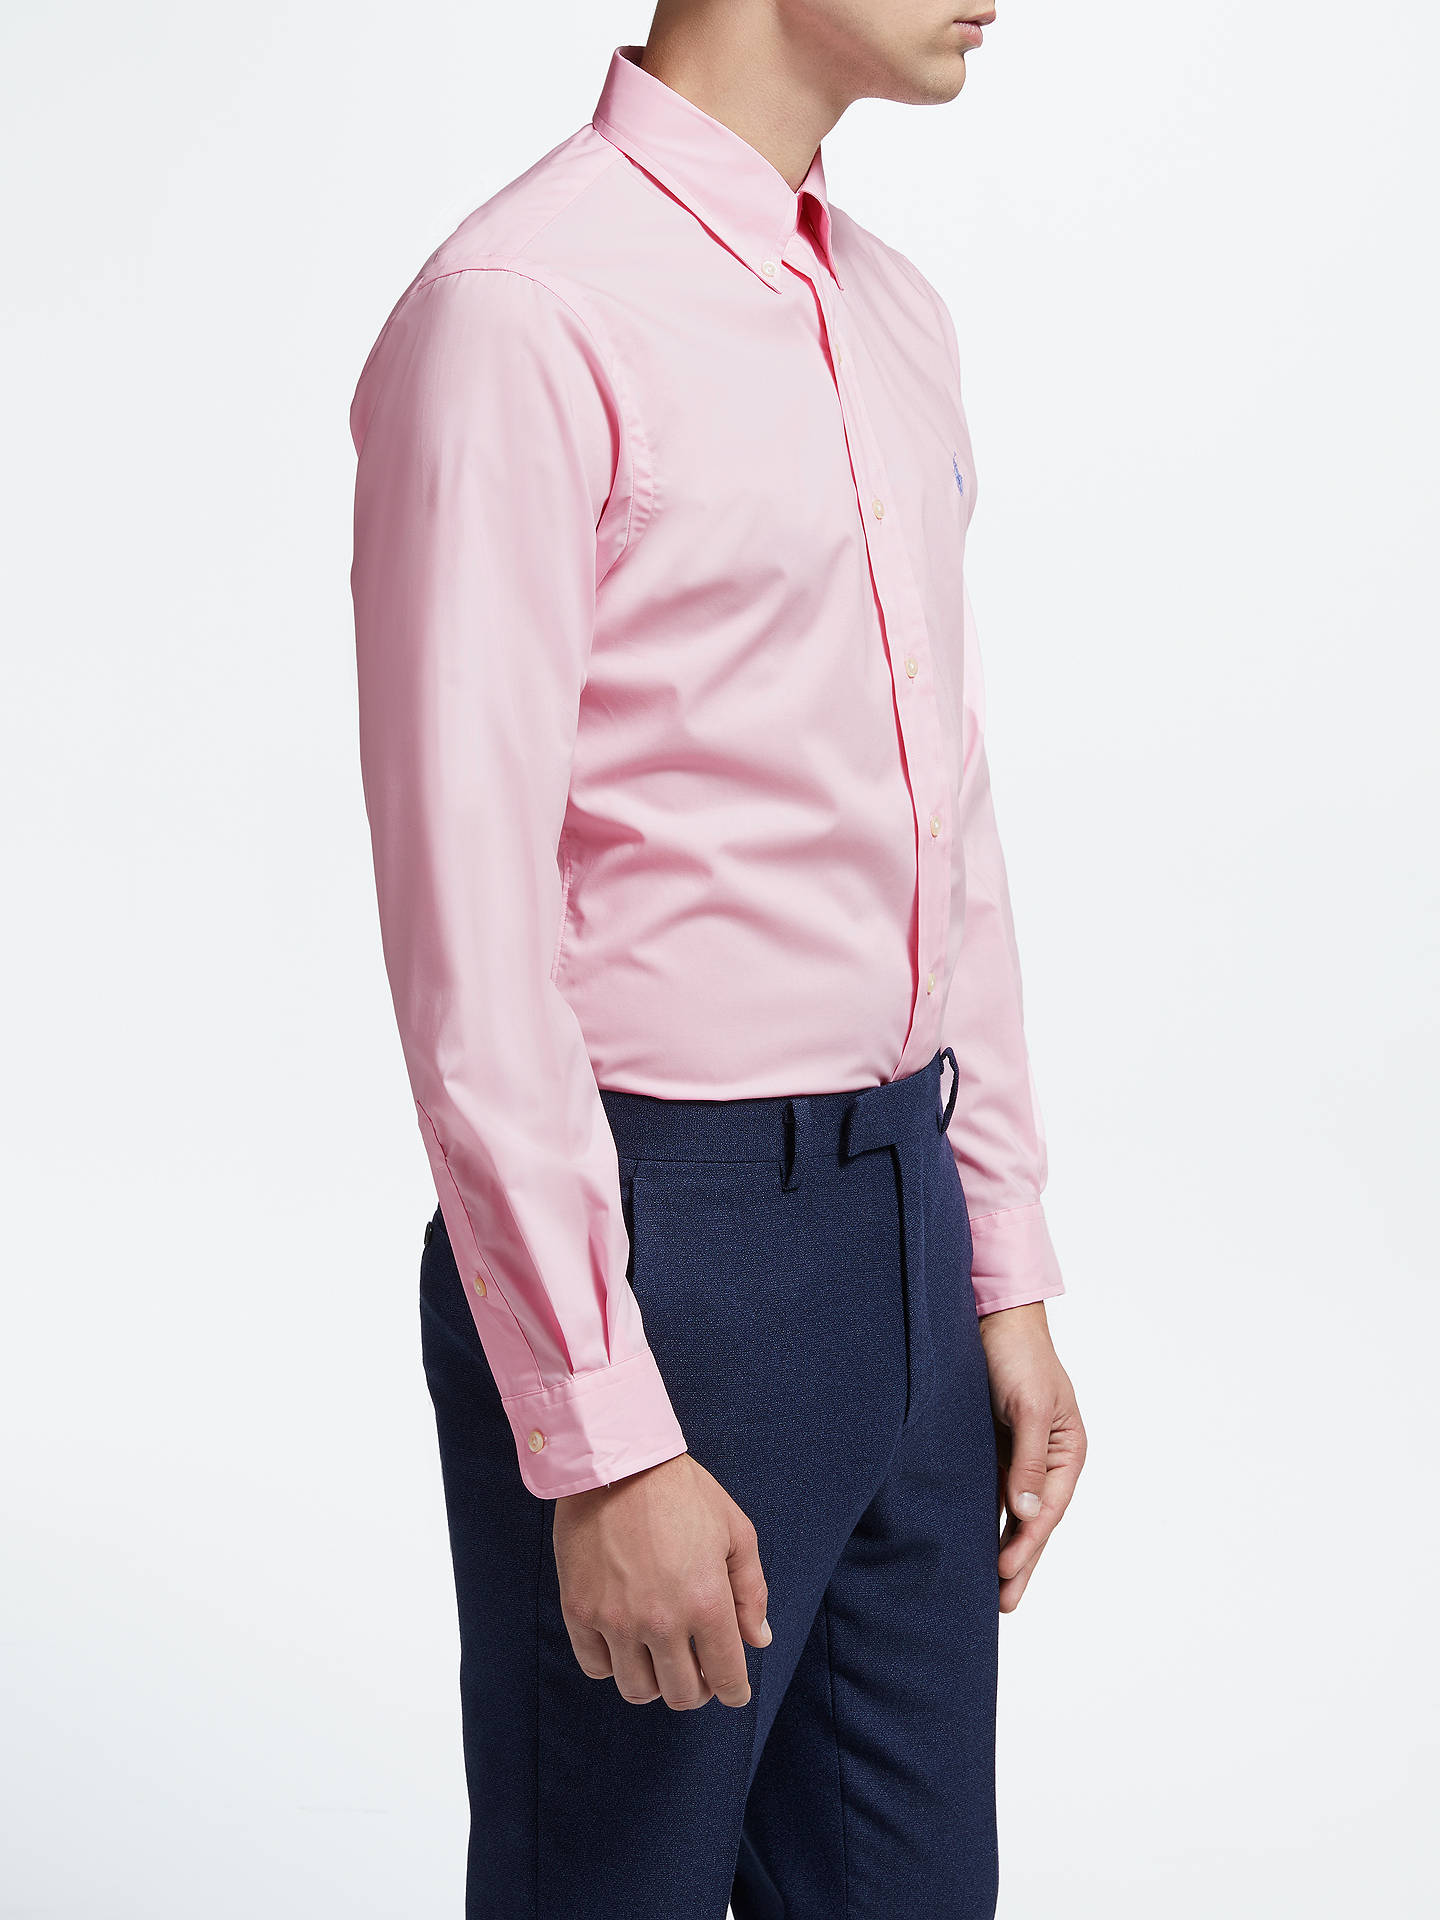 BuyPolo Ralph Lauren Long Sleeve Shirt, Carmel Pink, L Online at johnlewis.com